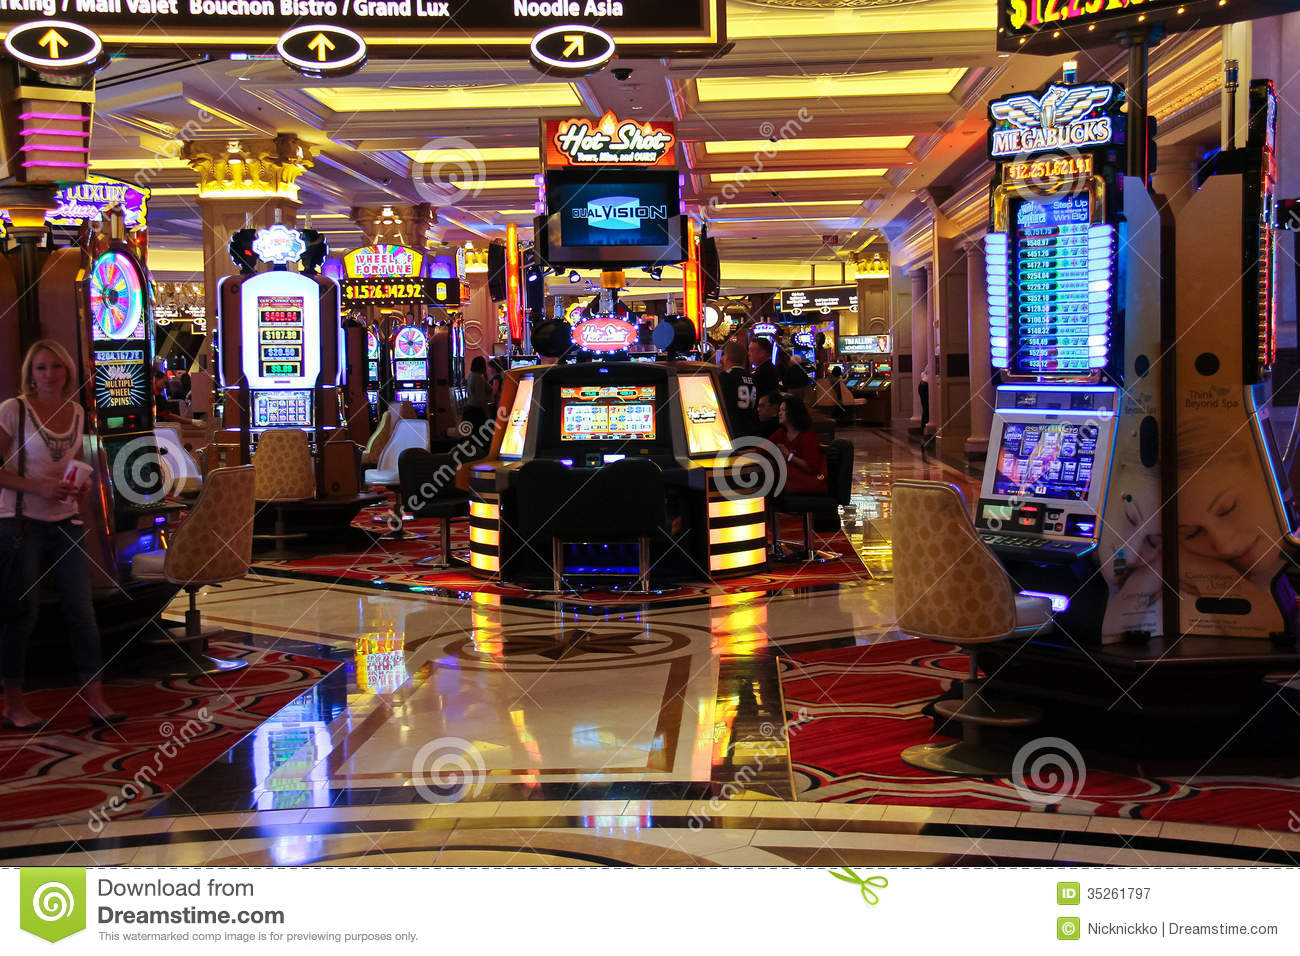 ... Shopper: Mad King Slots Machines - FREE Las Vegas Casino Games (Games